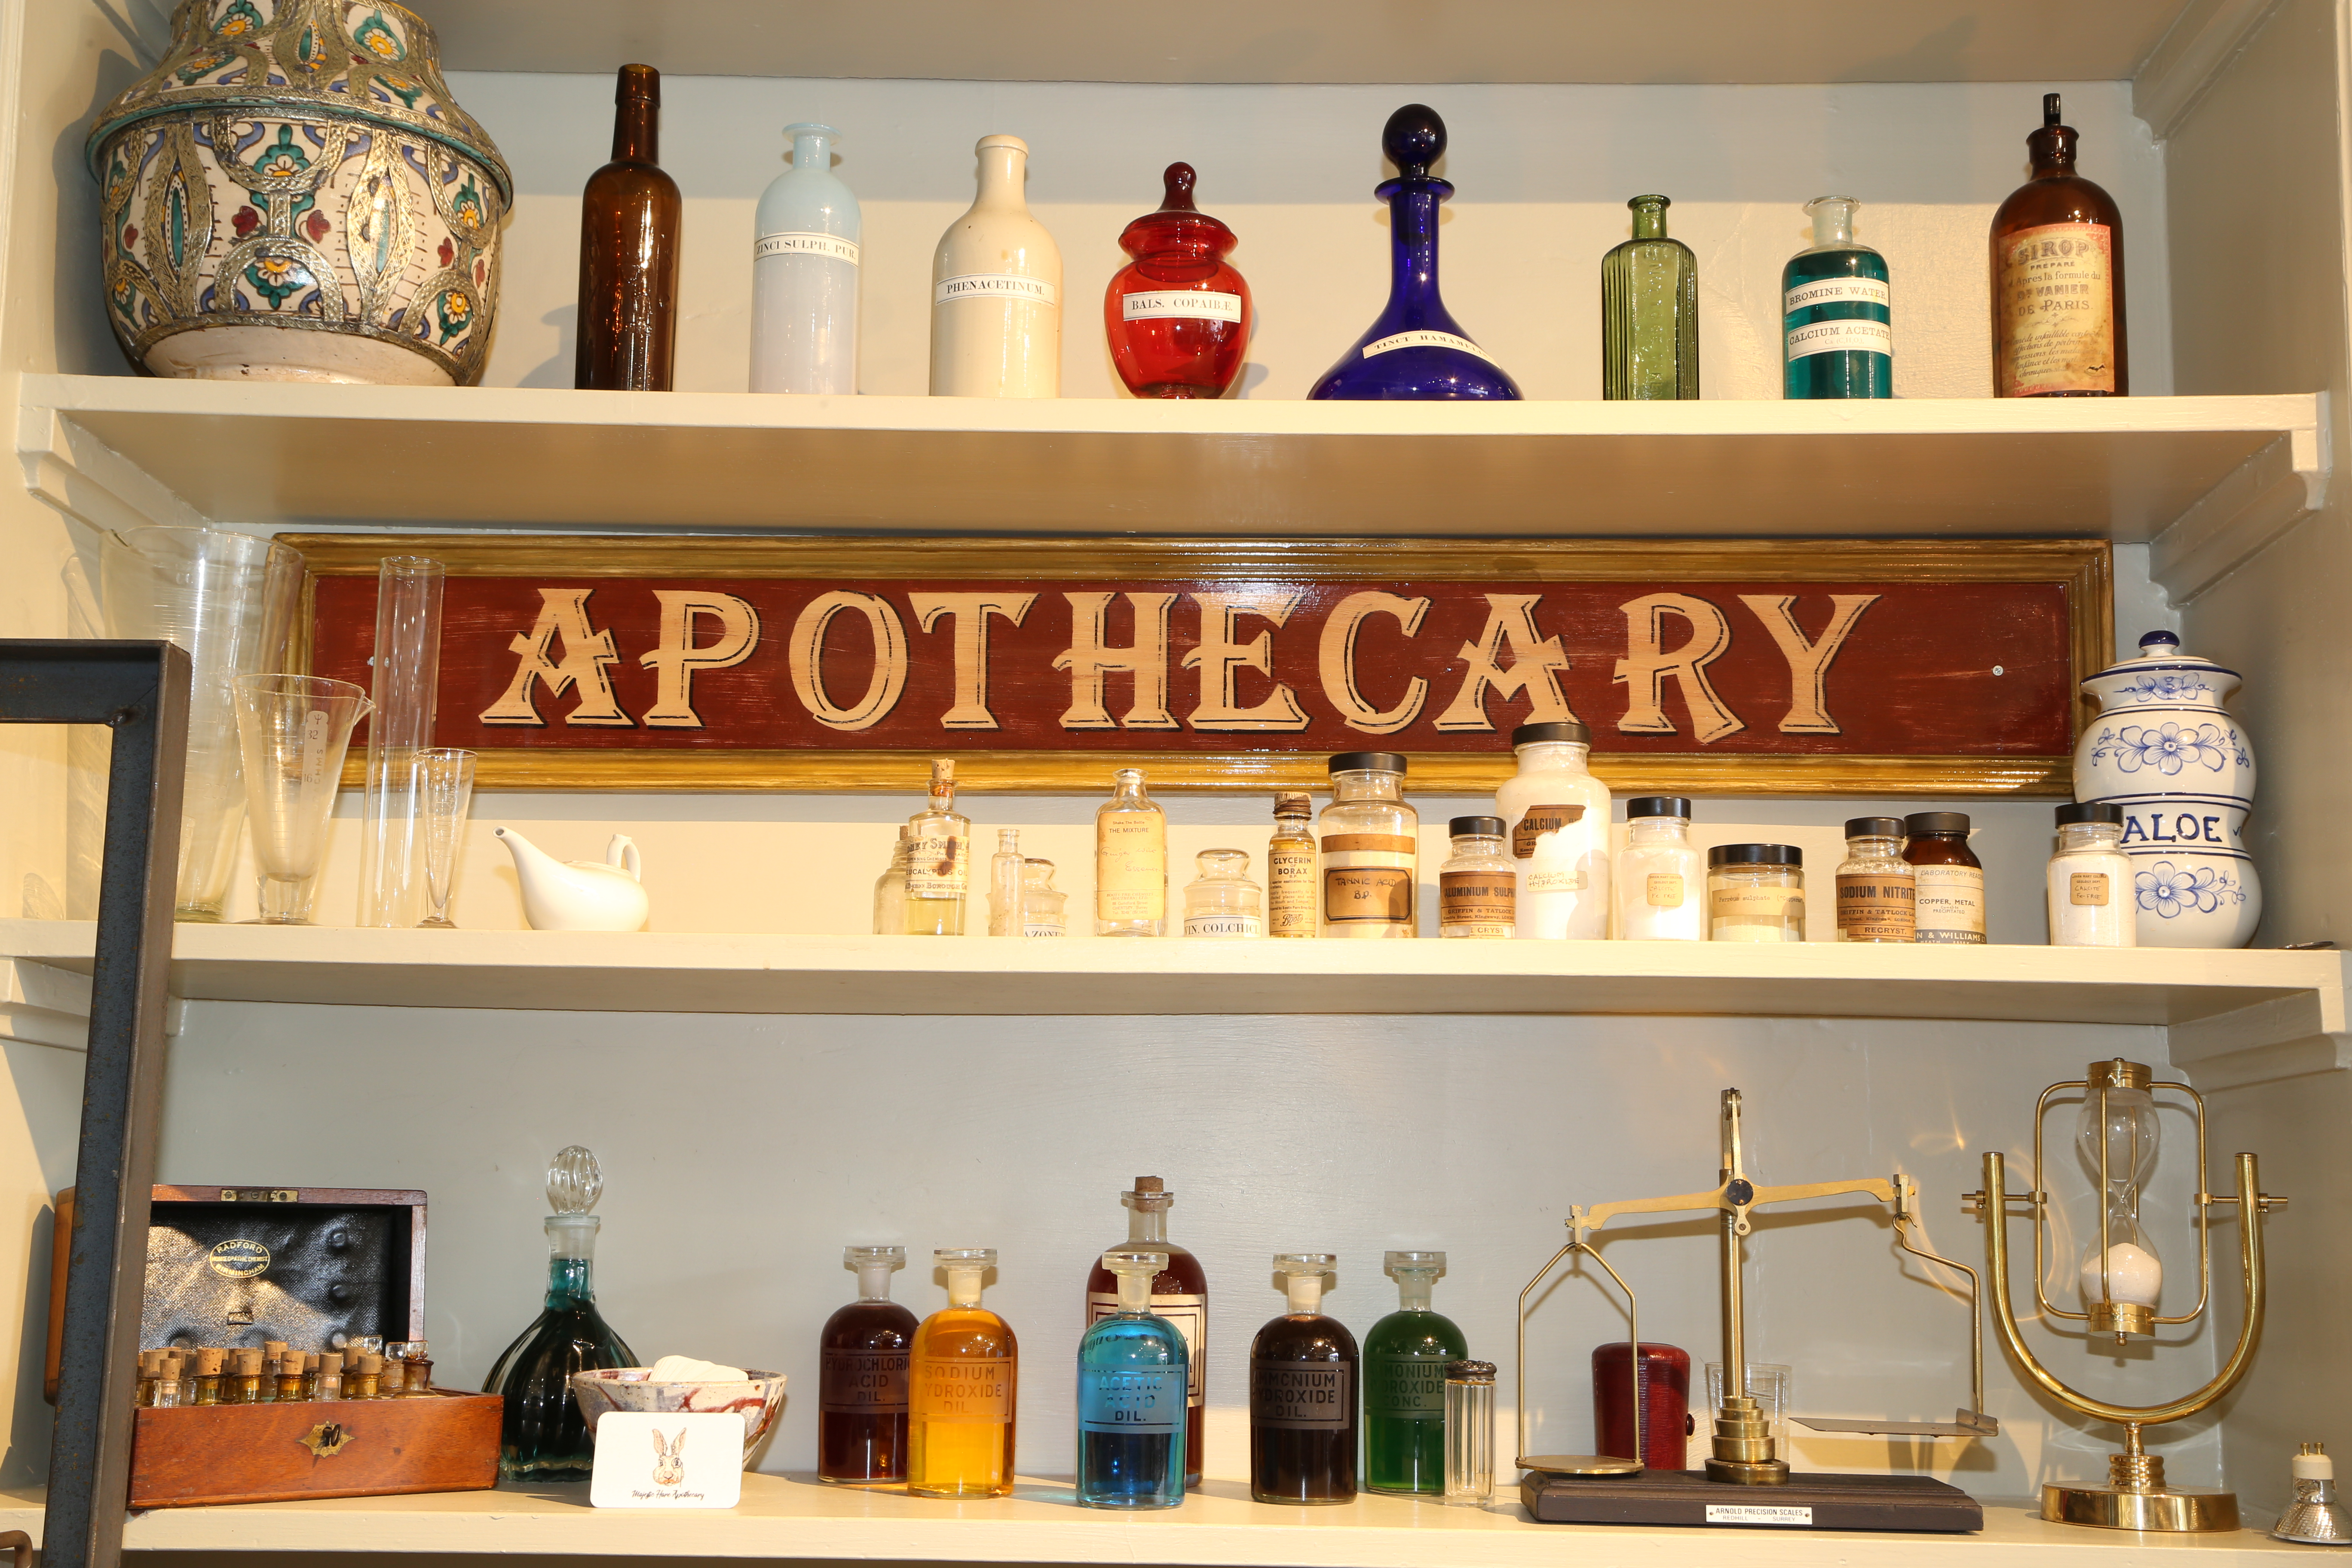 Majestic Hare Apothecary shelving